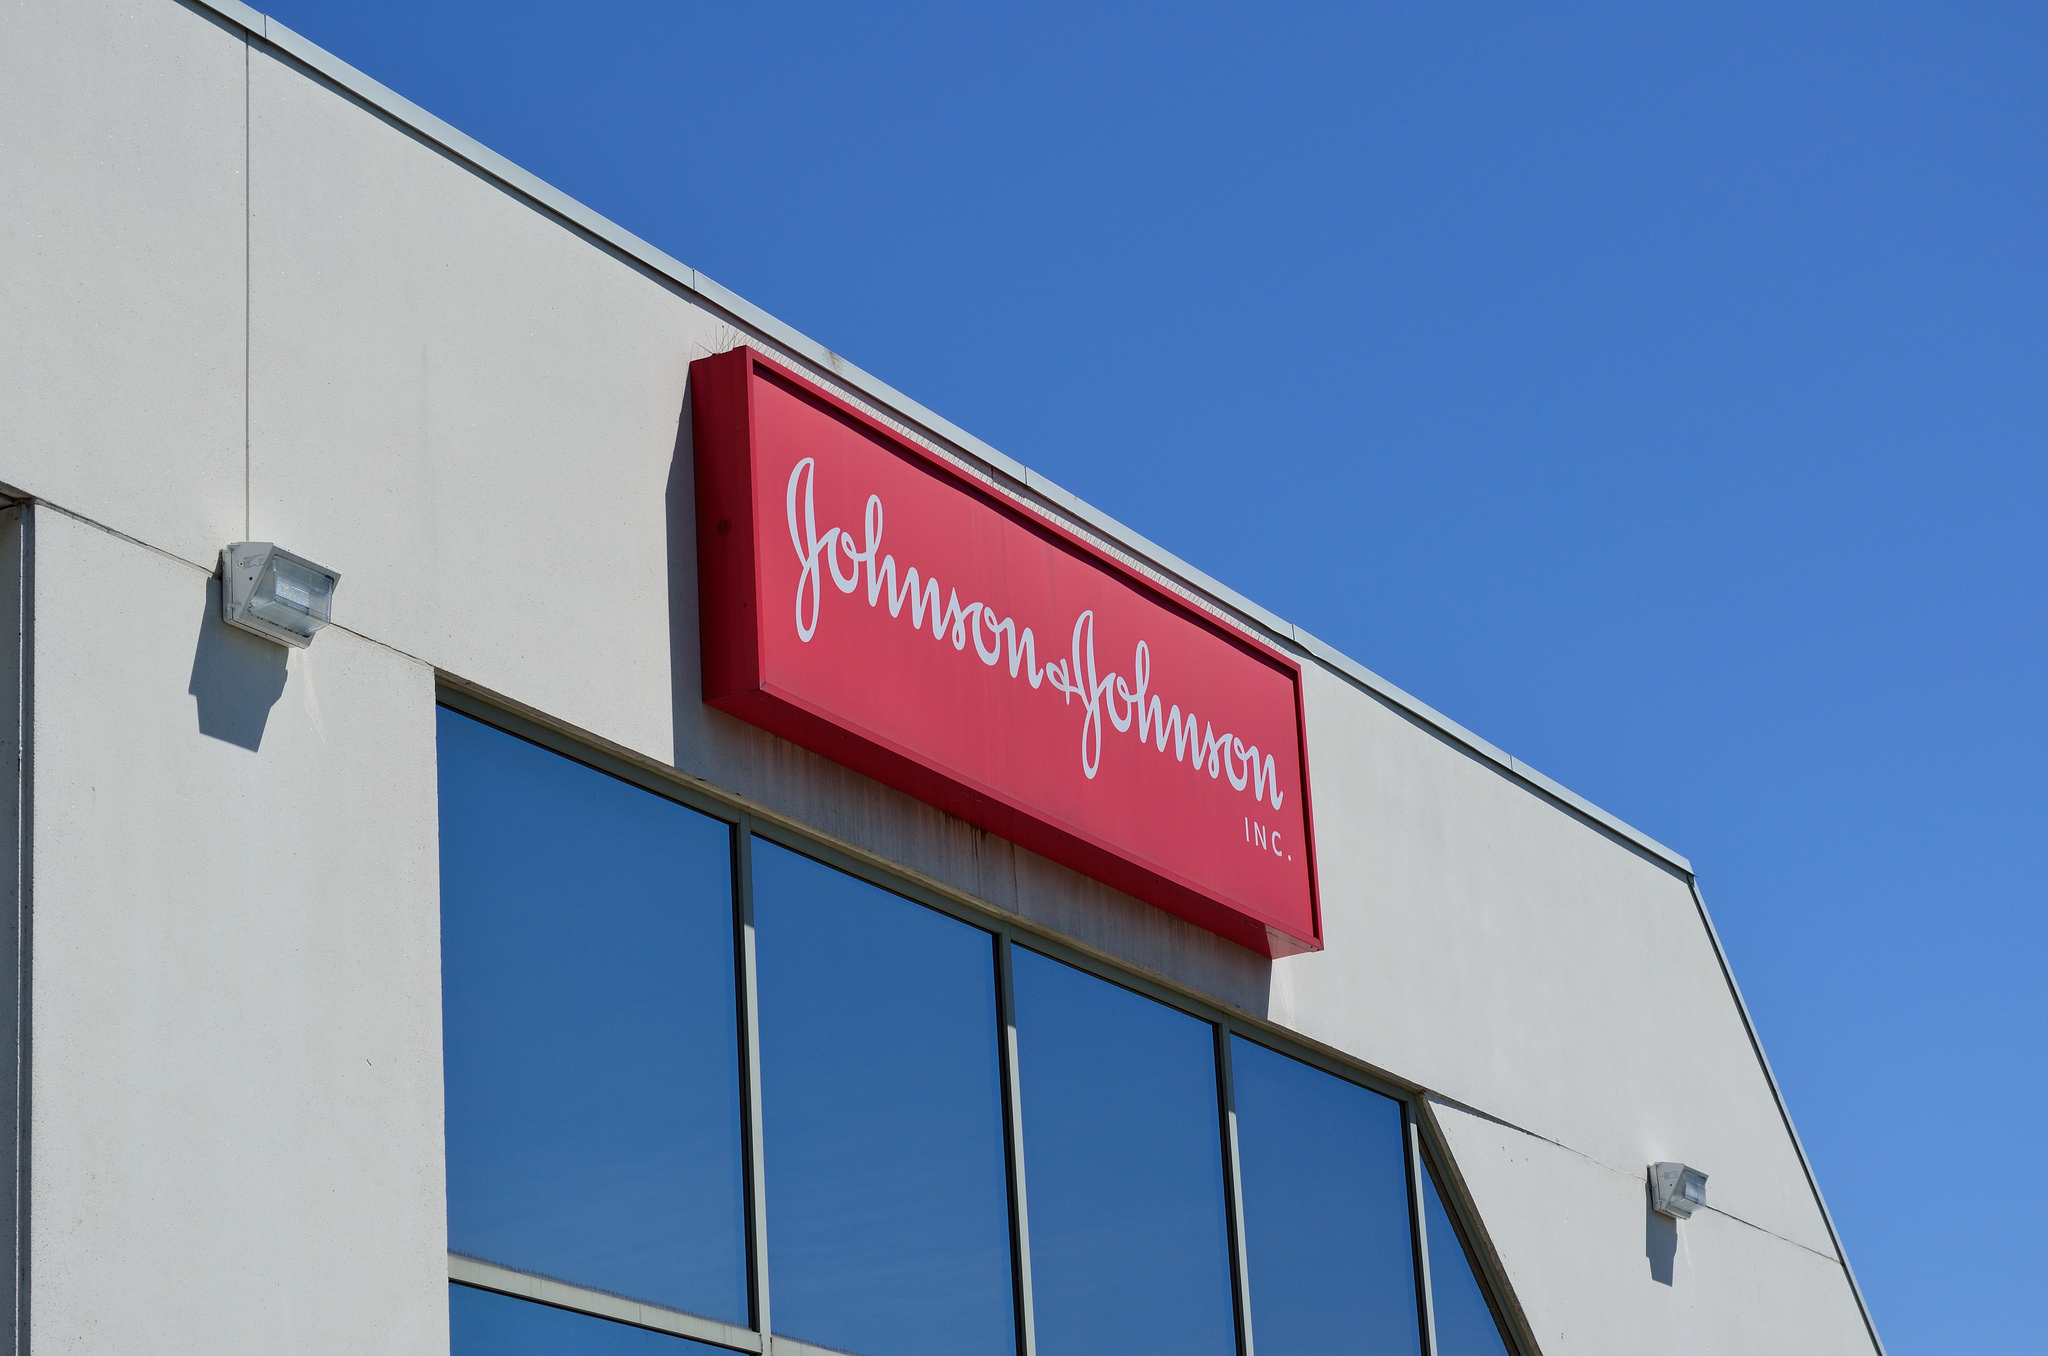 J&J to close plant, putting 400 jobs at risk | FierceBiotech